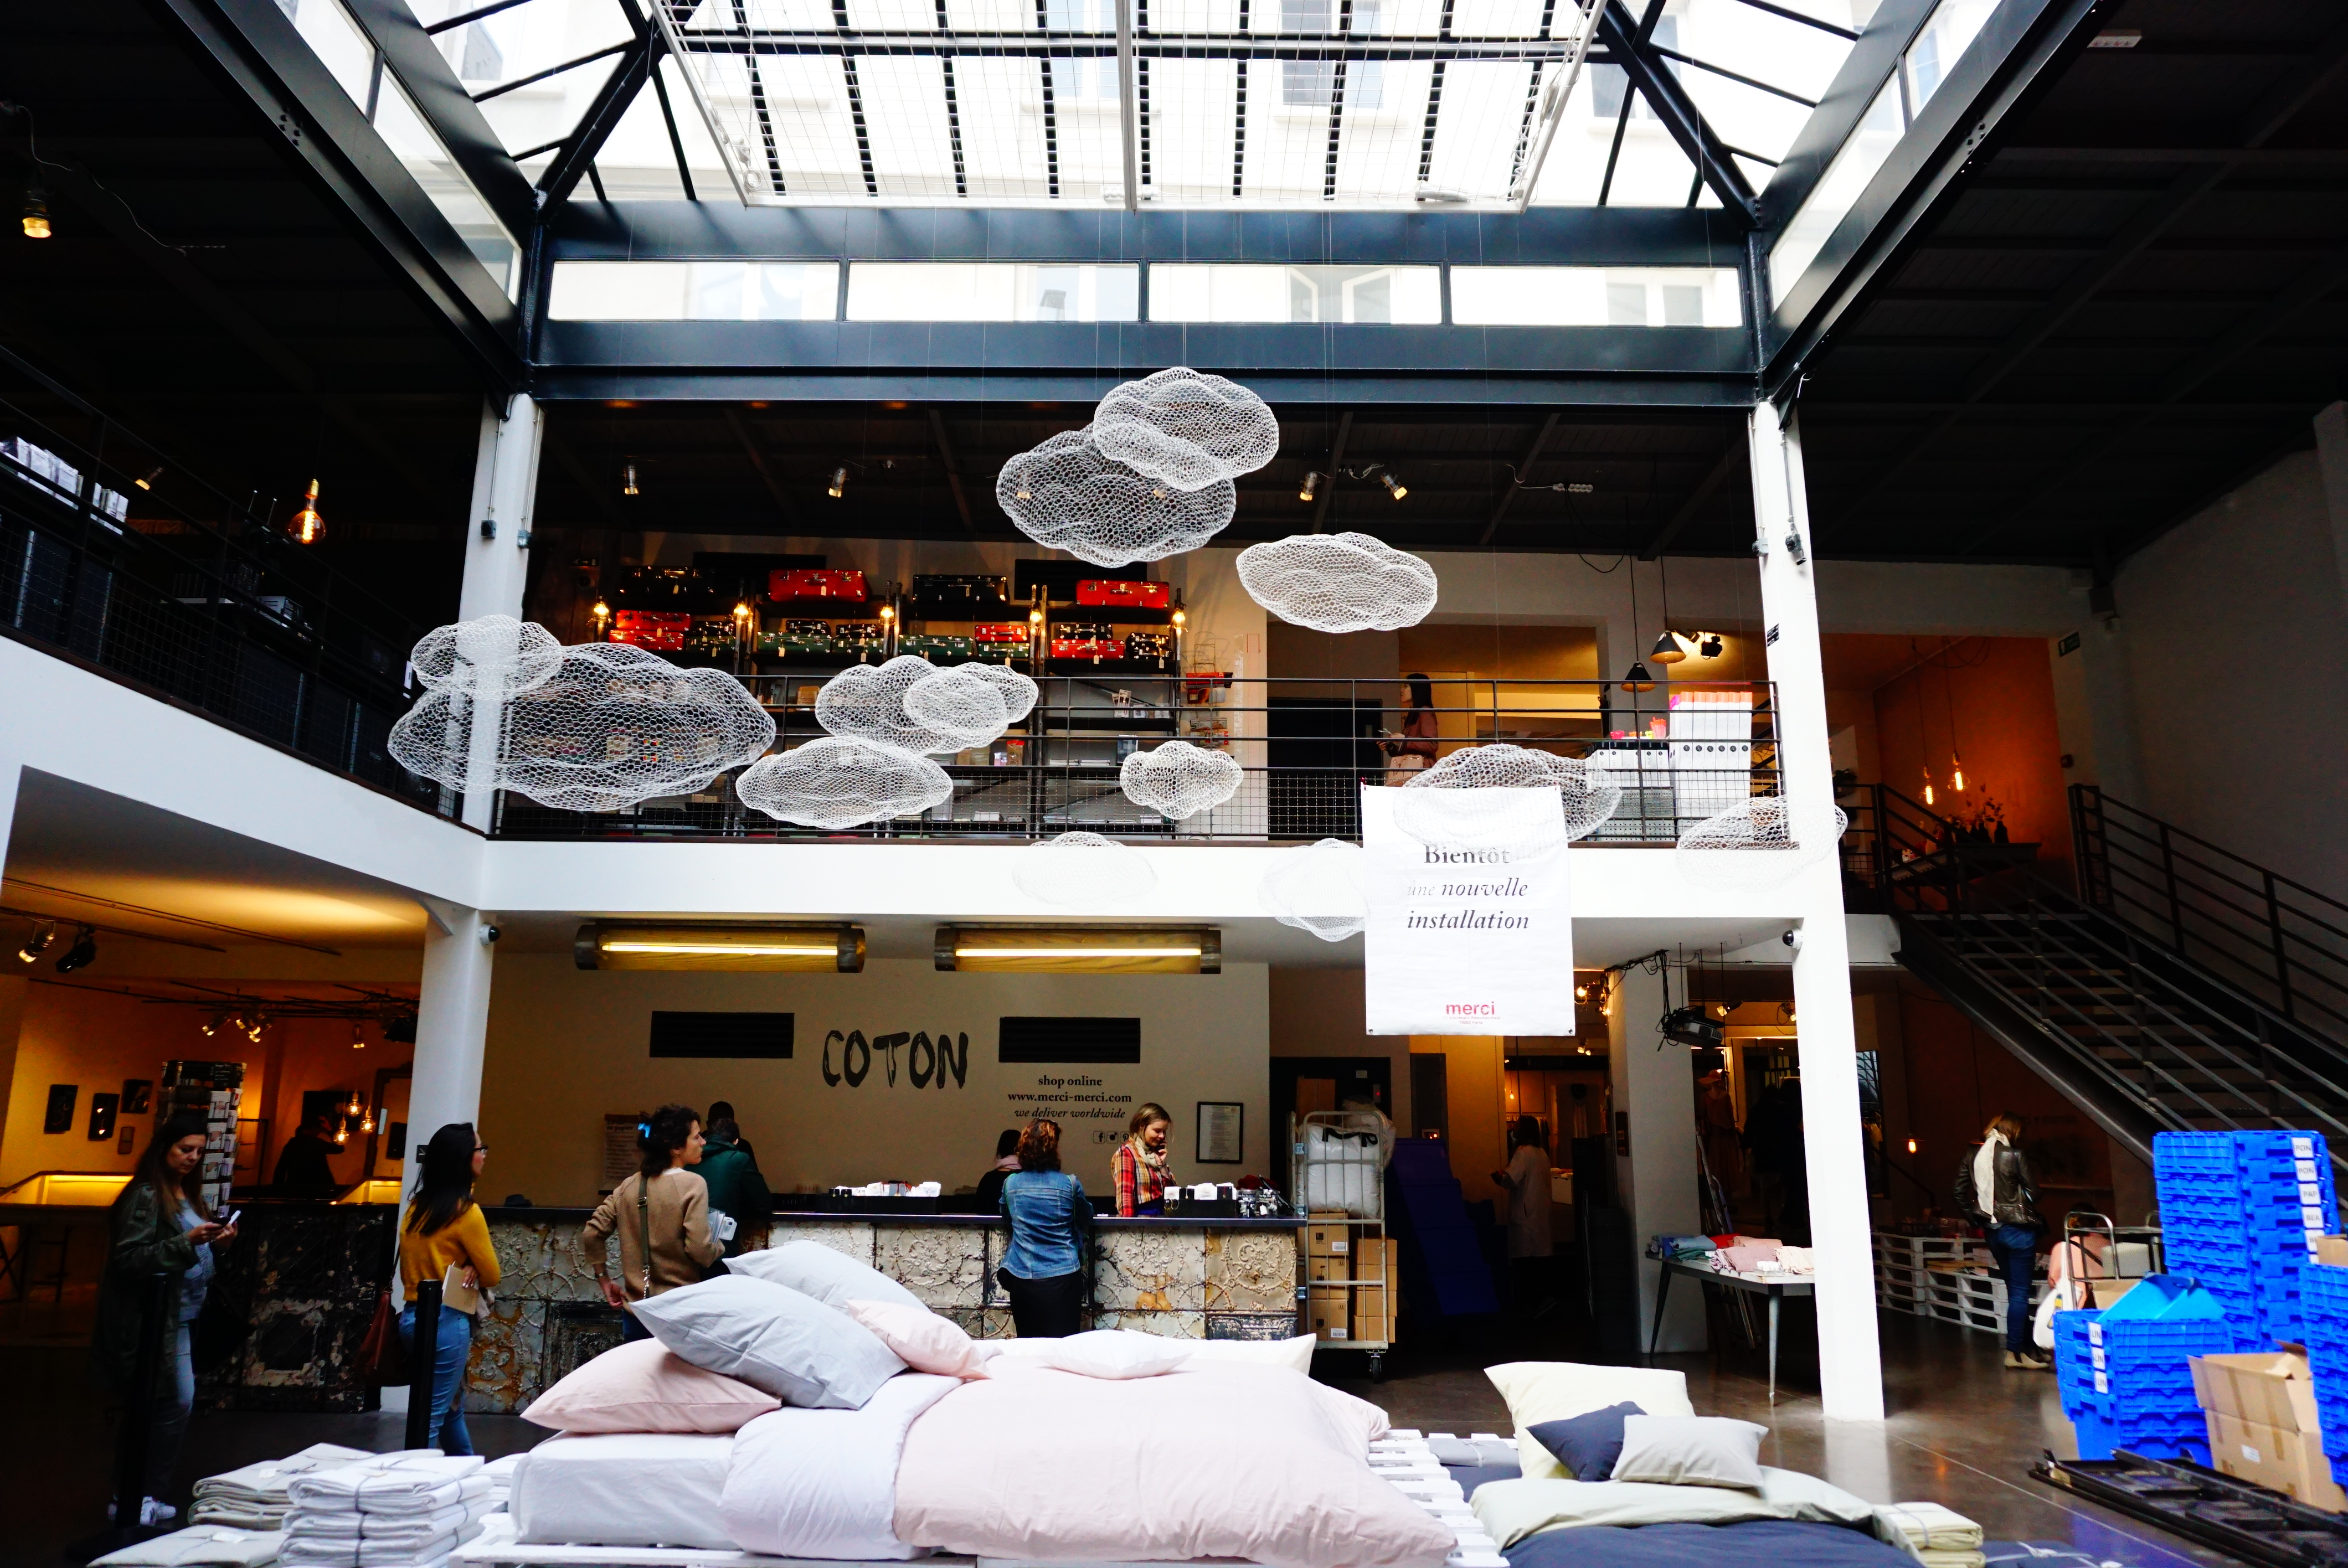 Paris | Visit to Merci Concept Store – Spoonful of Home Design